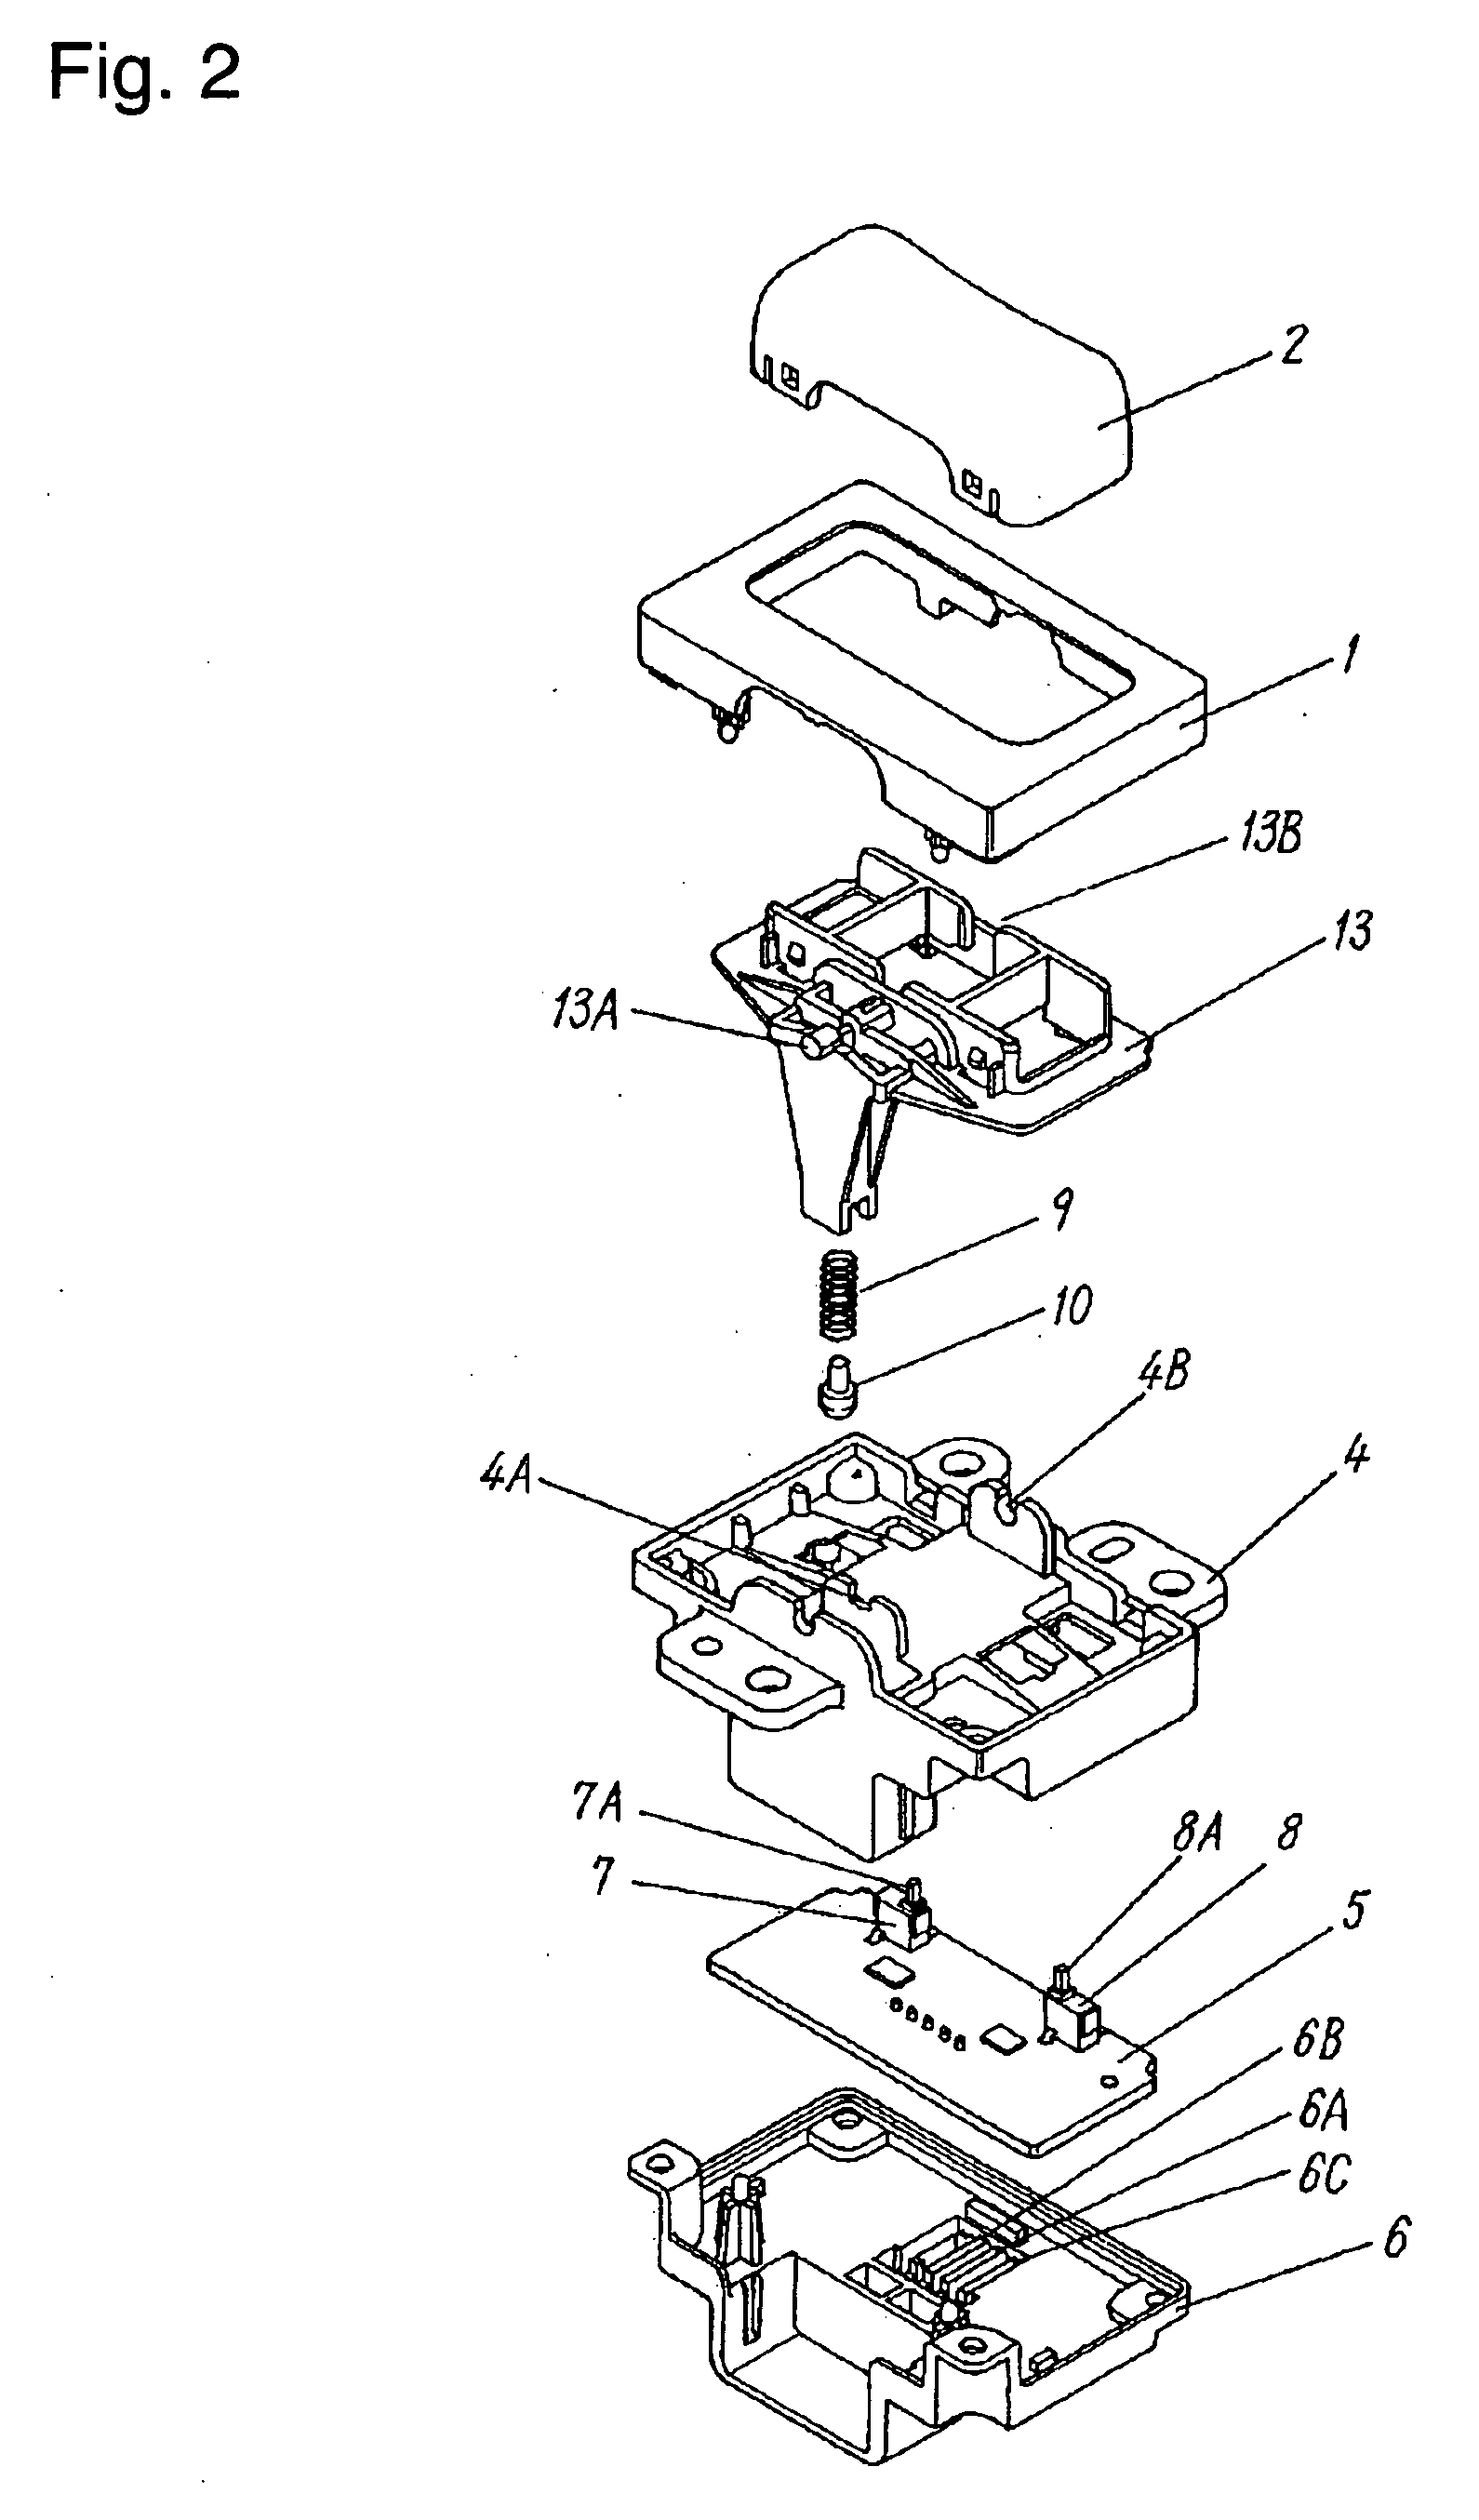 brevet us20050006214 rocker switch brevets 2 Prong Switch Wiring Diagram patent drawing